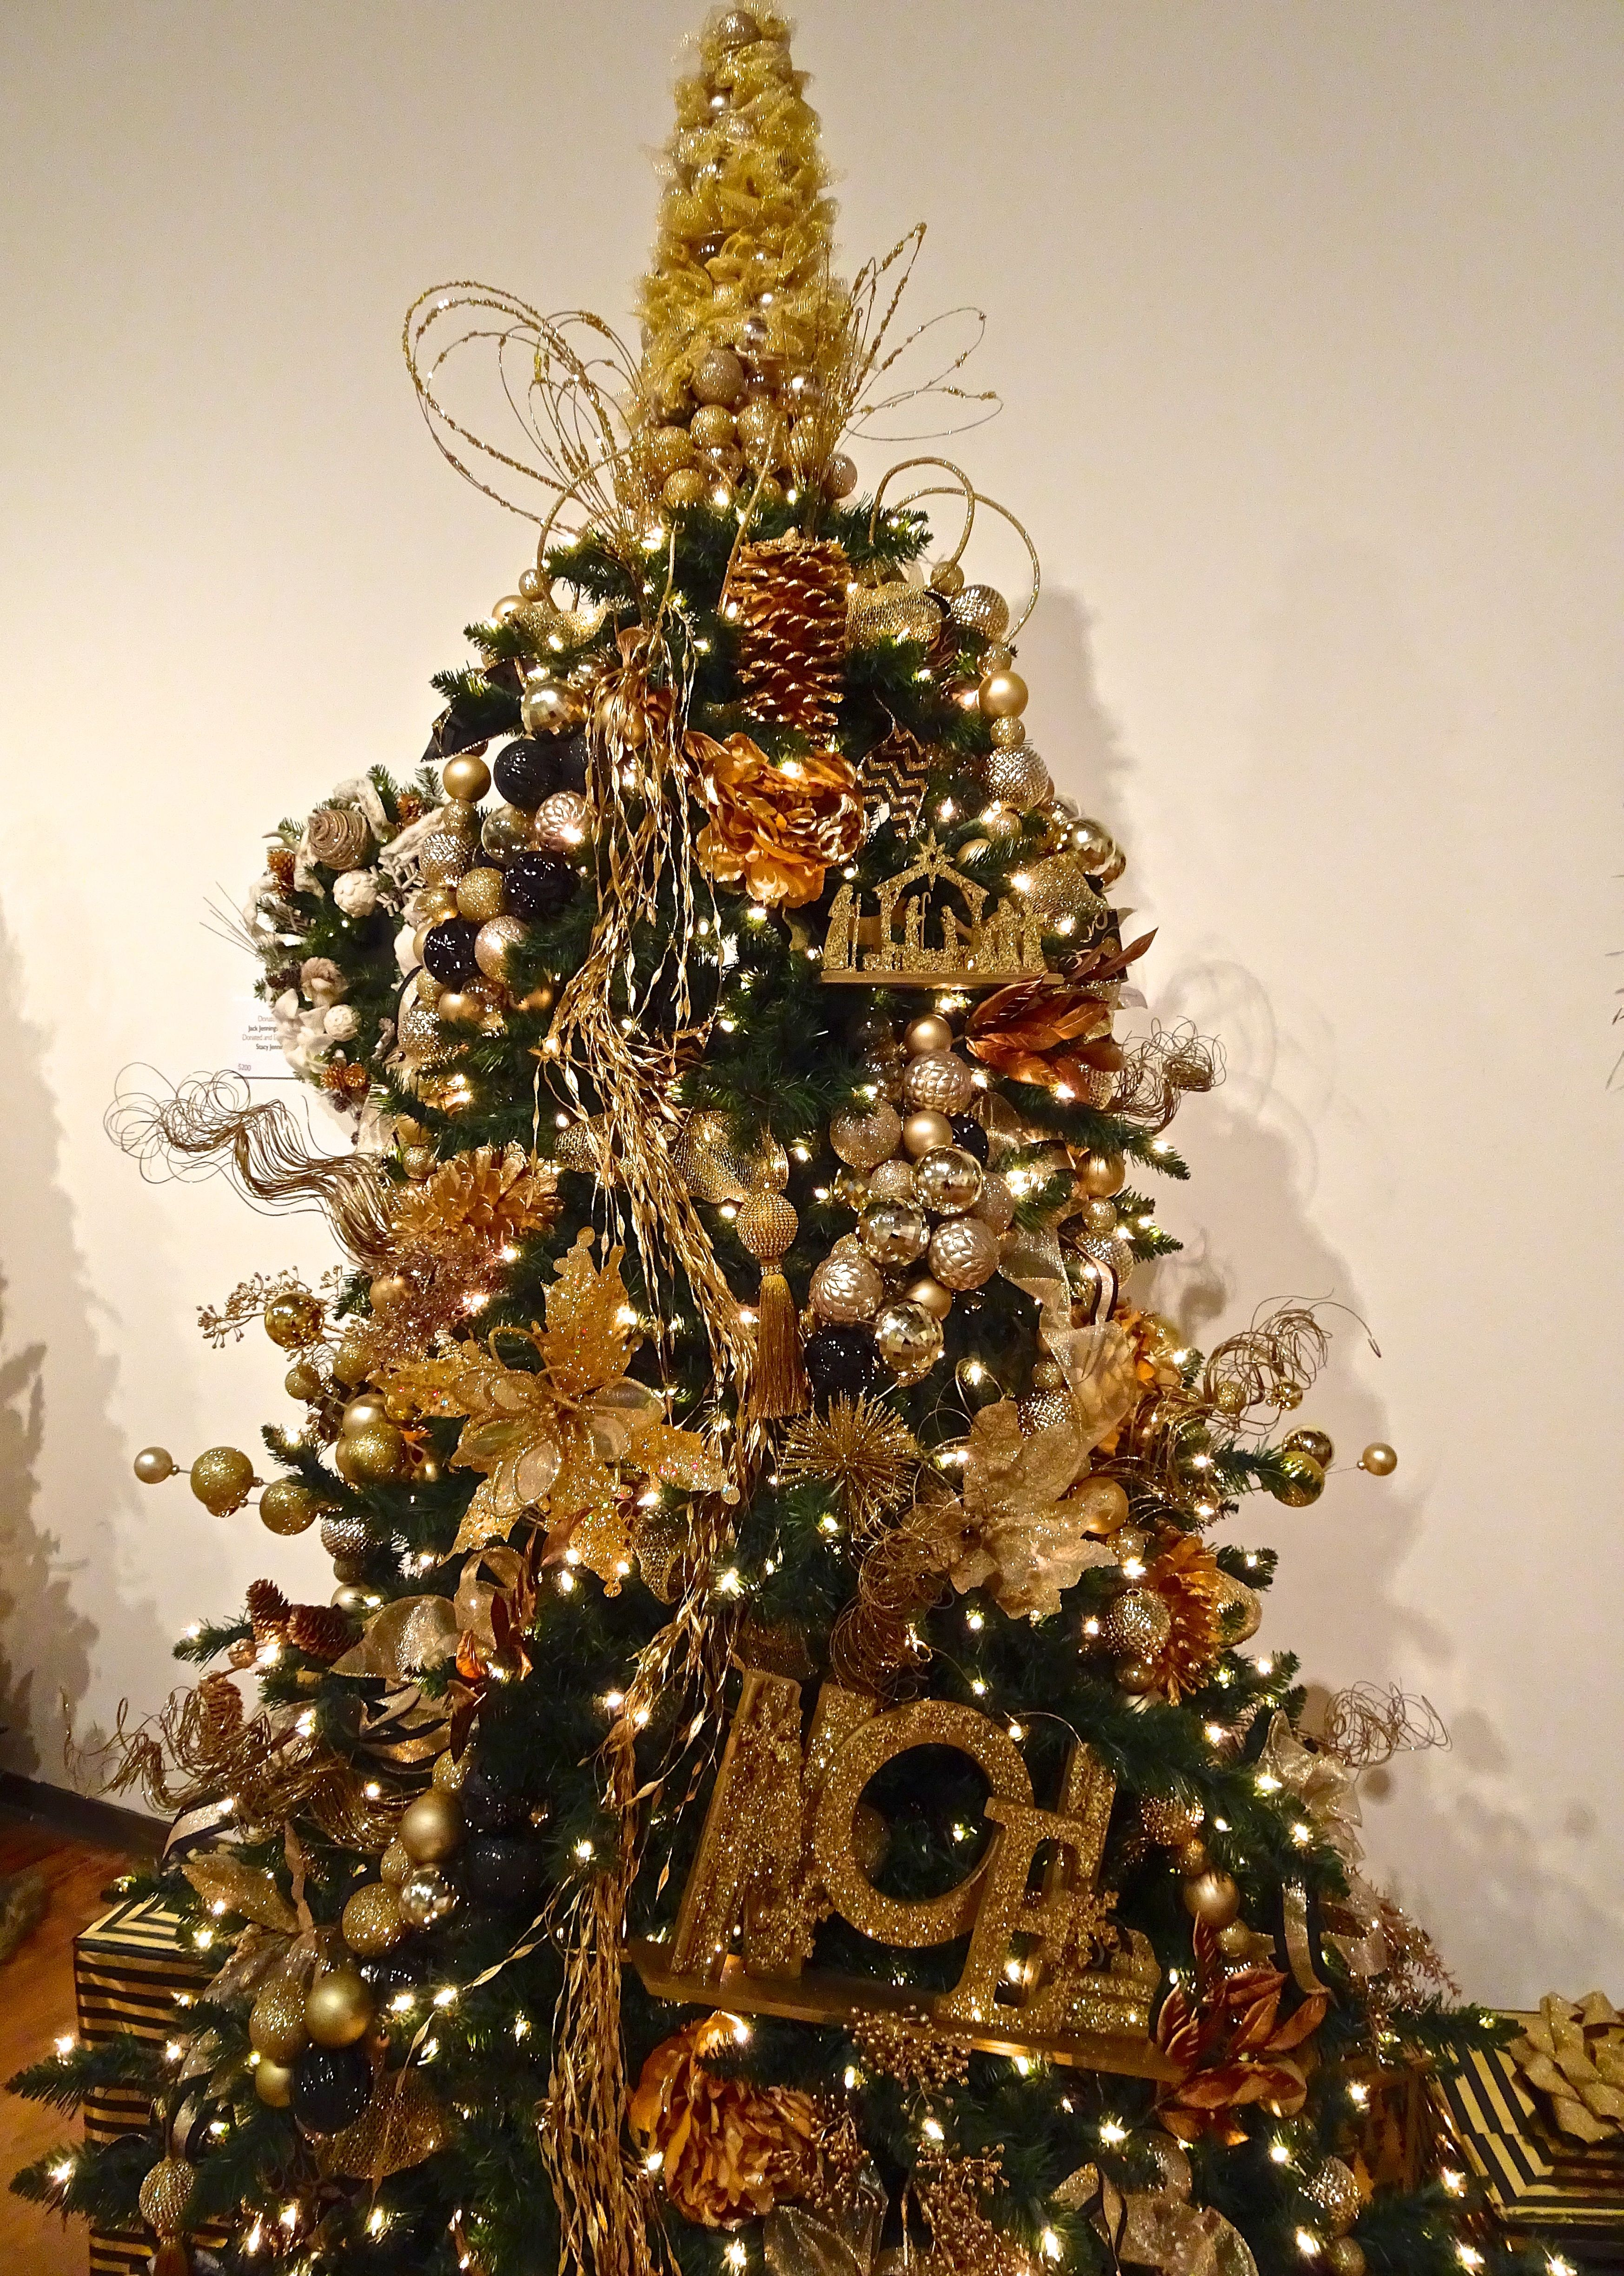 Exquisite Gold Christmas Tree At Oma Festival Of Trees In 2020 Orlando Museum Of Art Gold Christmas Tree Florida Christmas